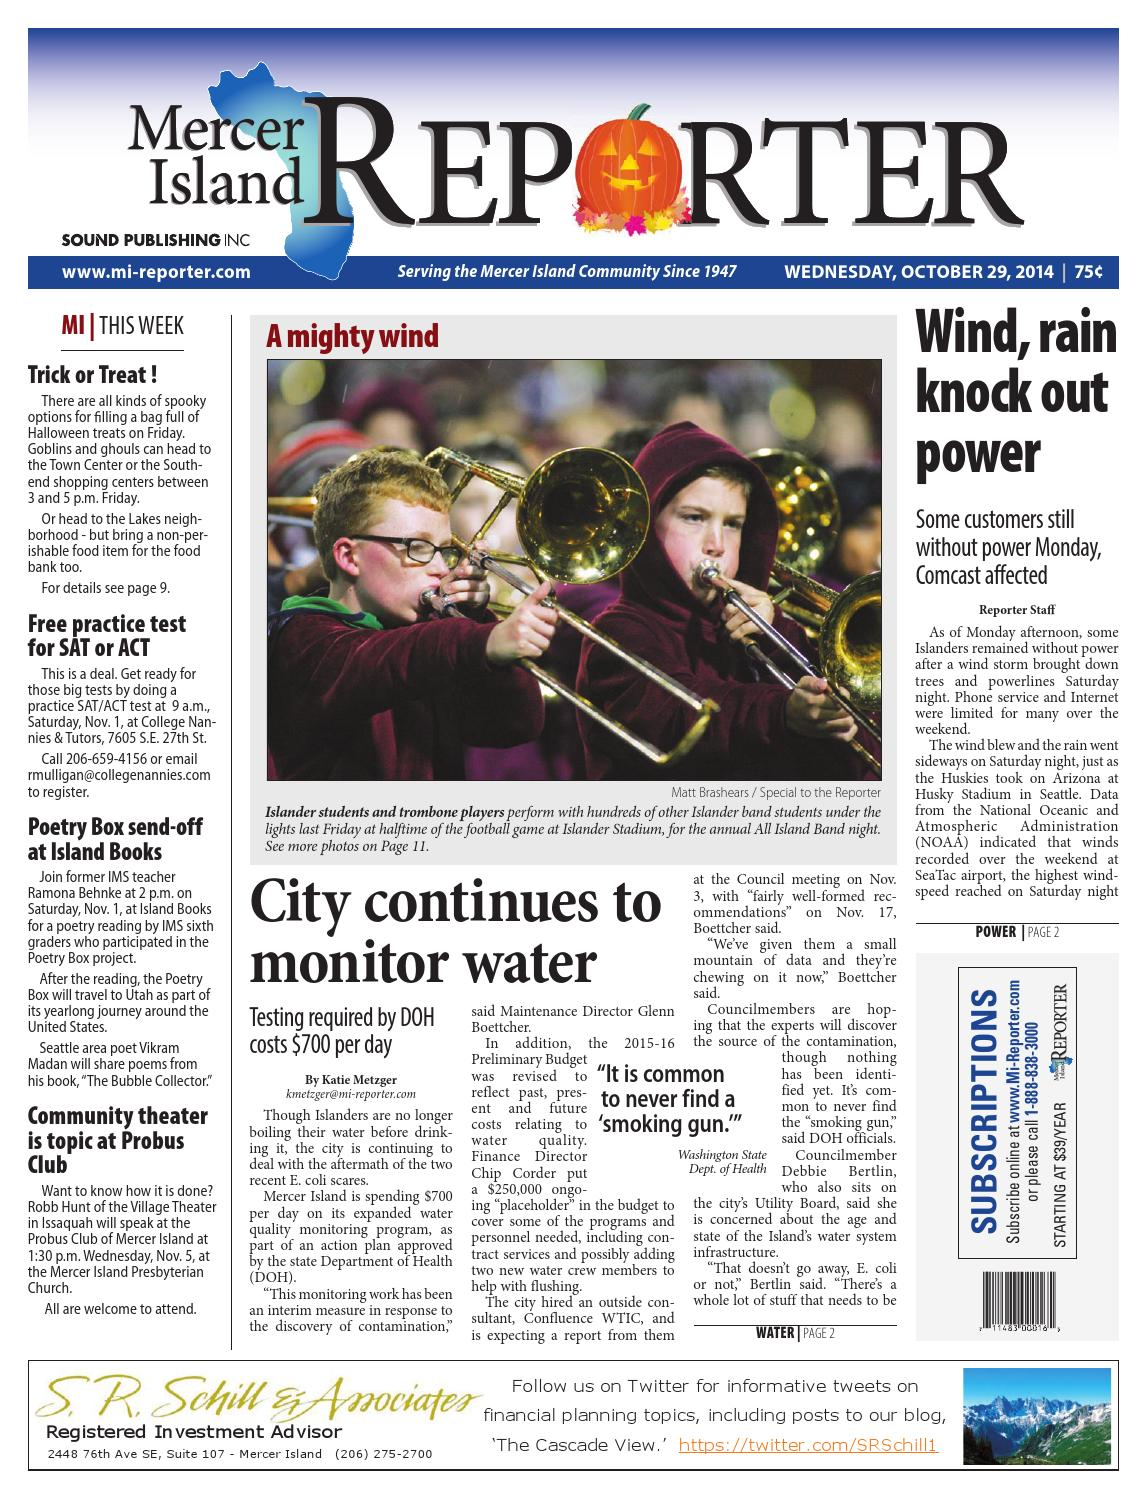 Mercer Island Reporter, October 29, 2014 by Sound Publishing